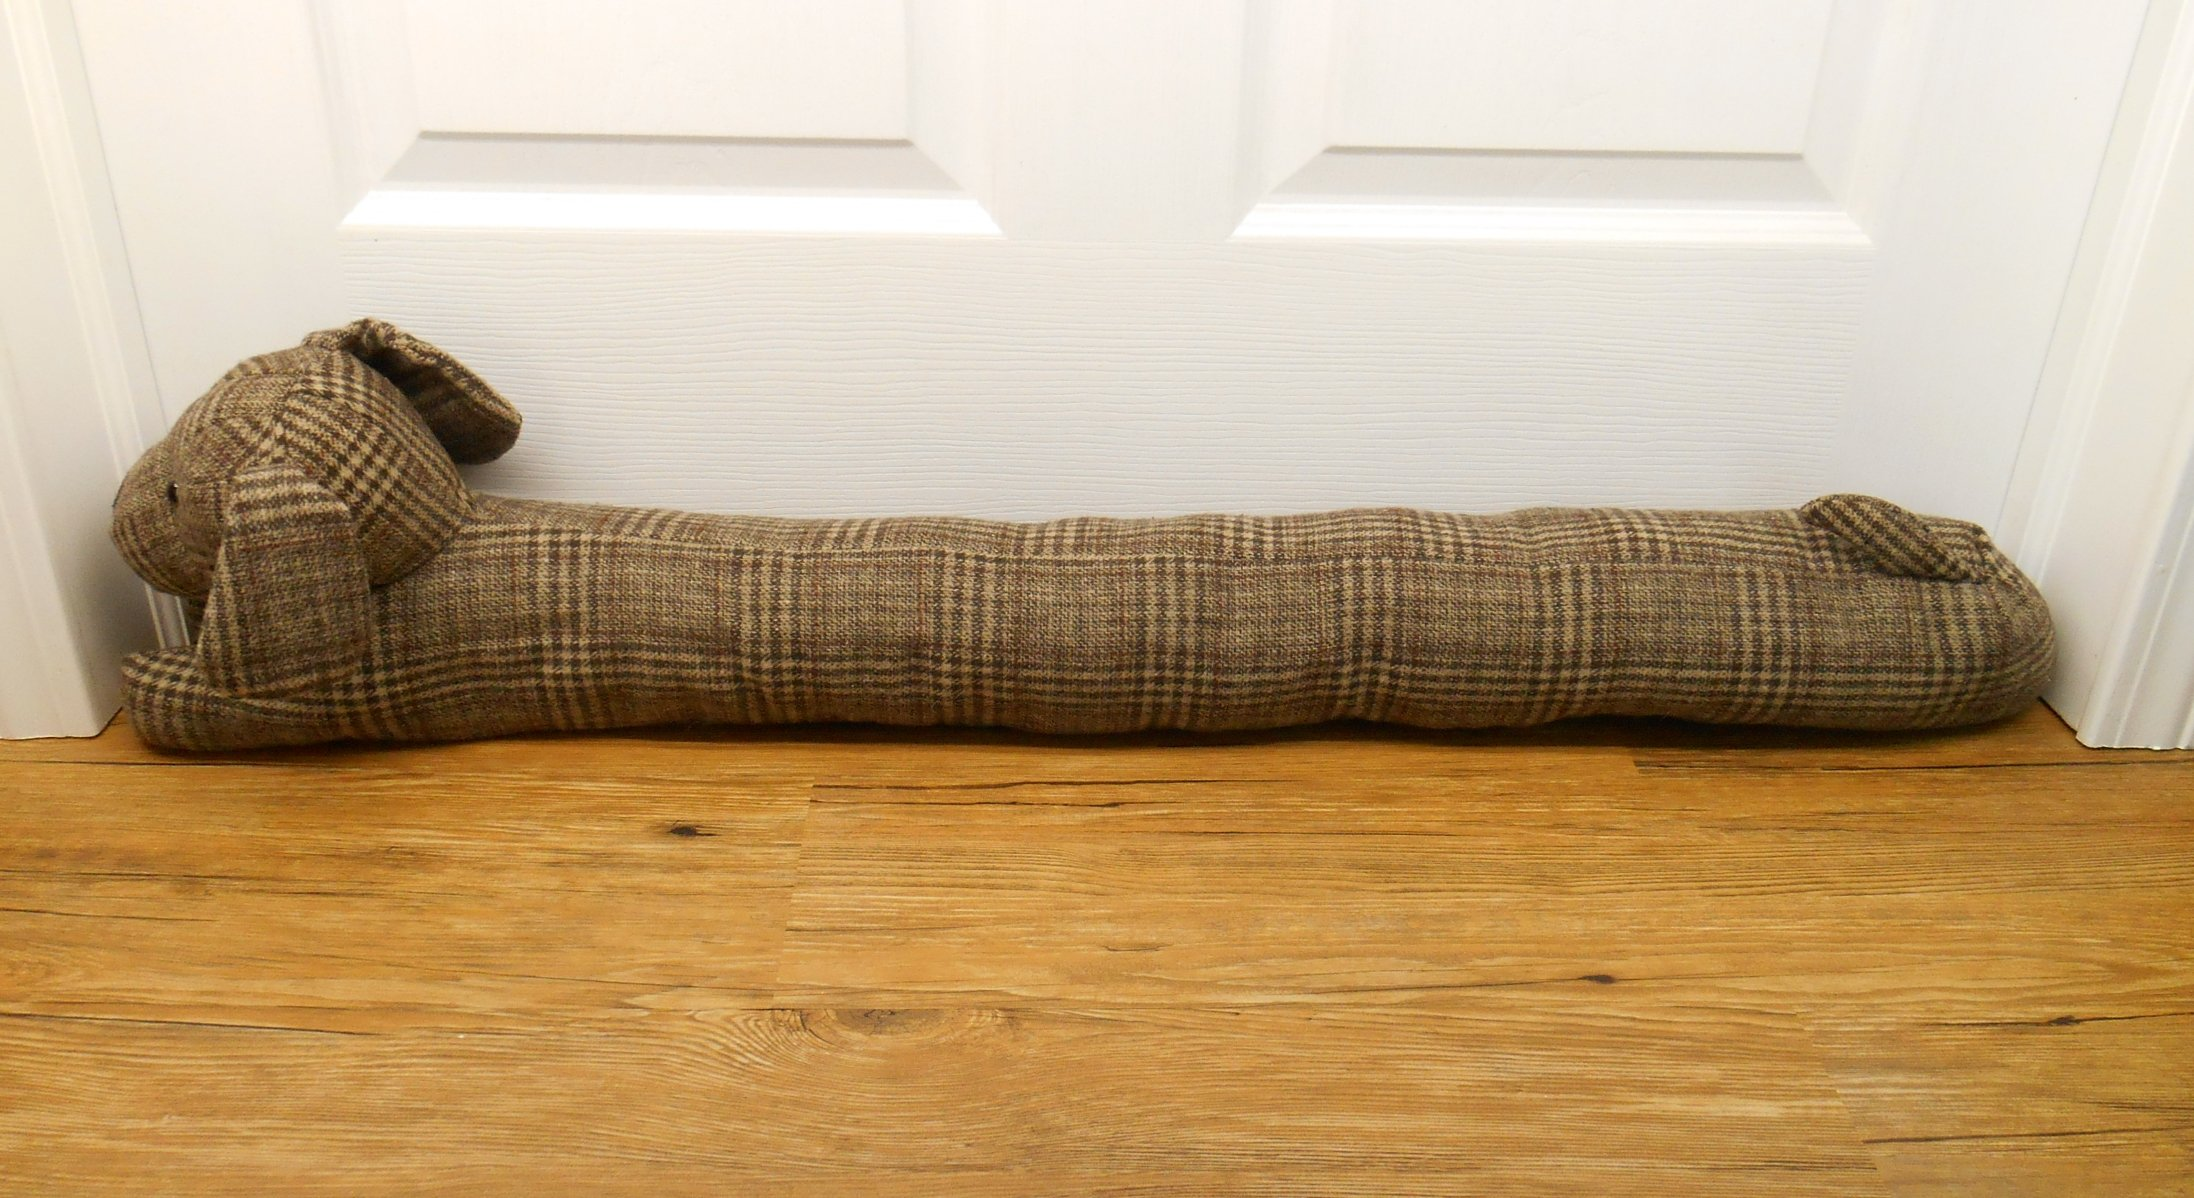 Heavy Duty Animal Draft Blocker - Fits up to 36'' Doors and Windows. Save Energy. Keep the Cold Out! (Cocoa the Brown Plaid Dog)